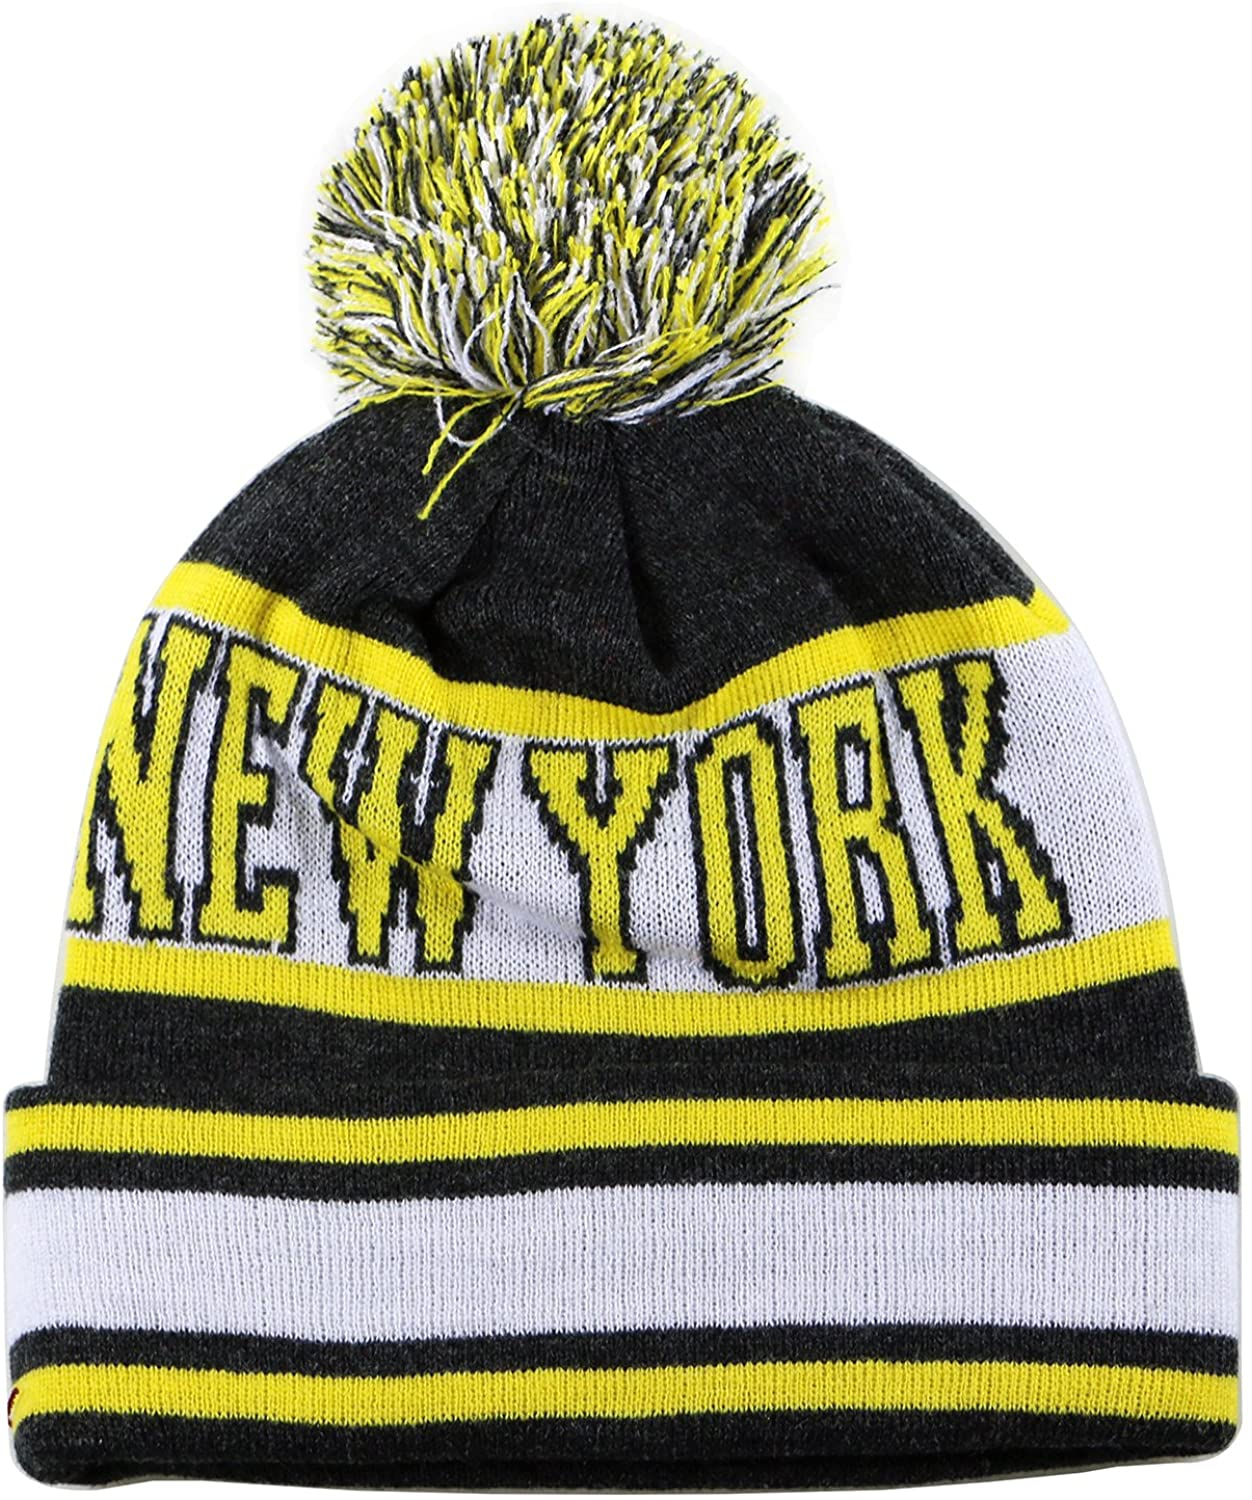 City Hunter Sk1130 New York Stripes Pom Pom Beanie Hats - Black/neon Yellow